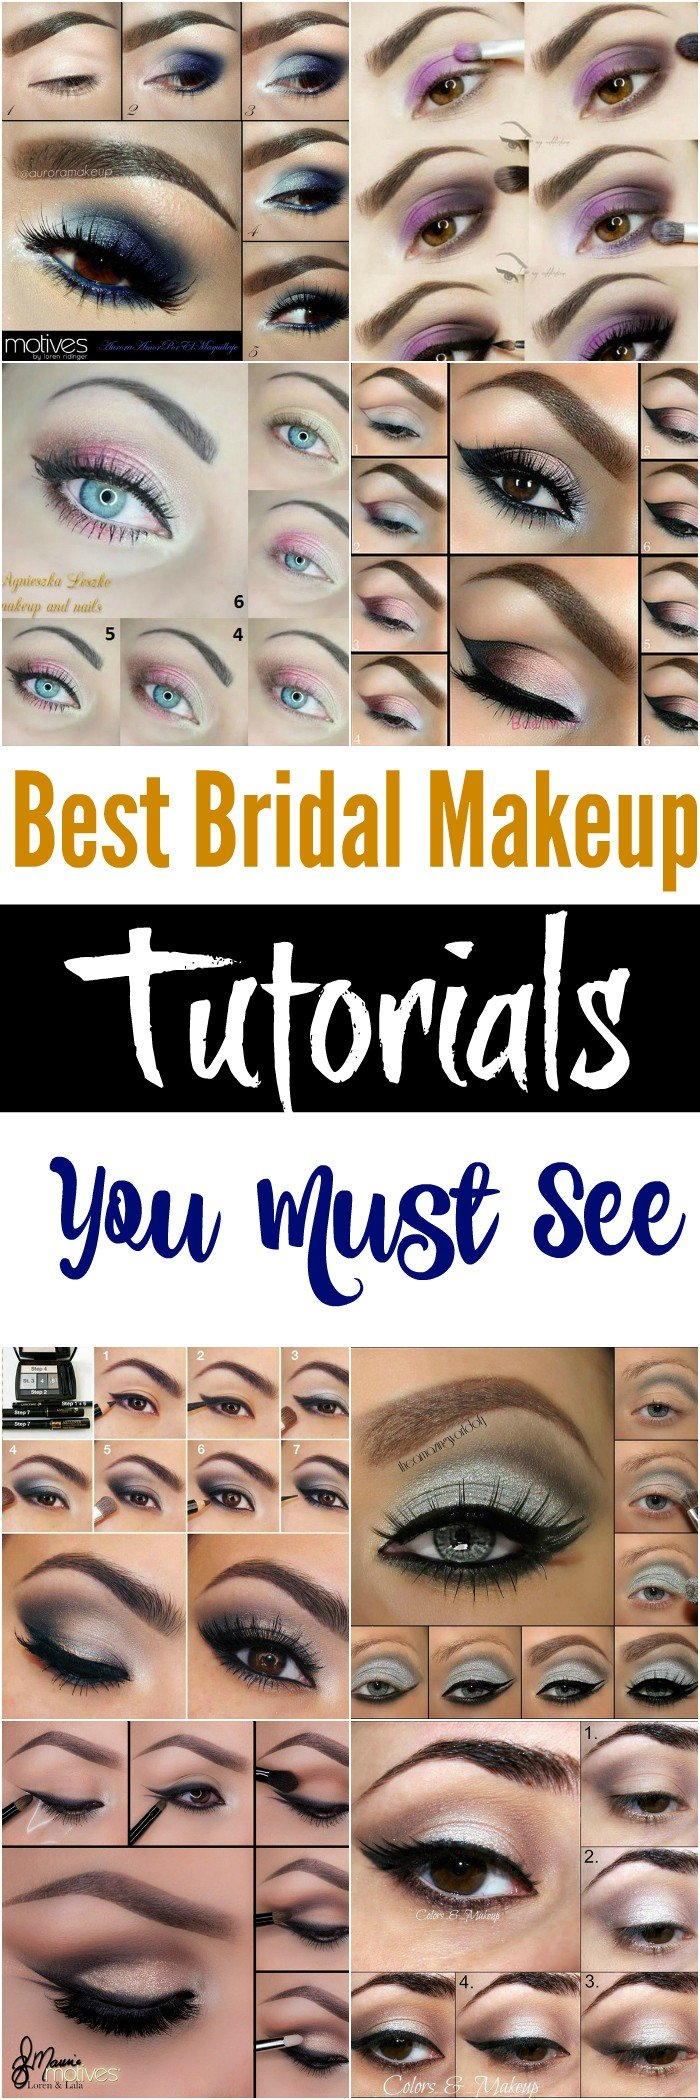 Makeup Tutorial for Bridal